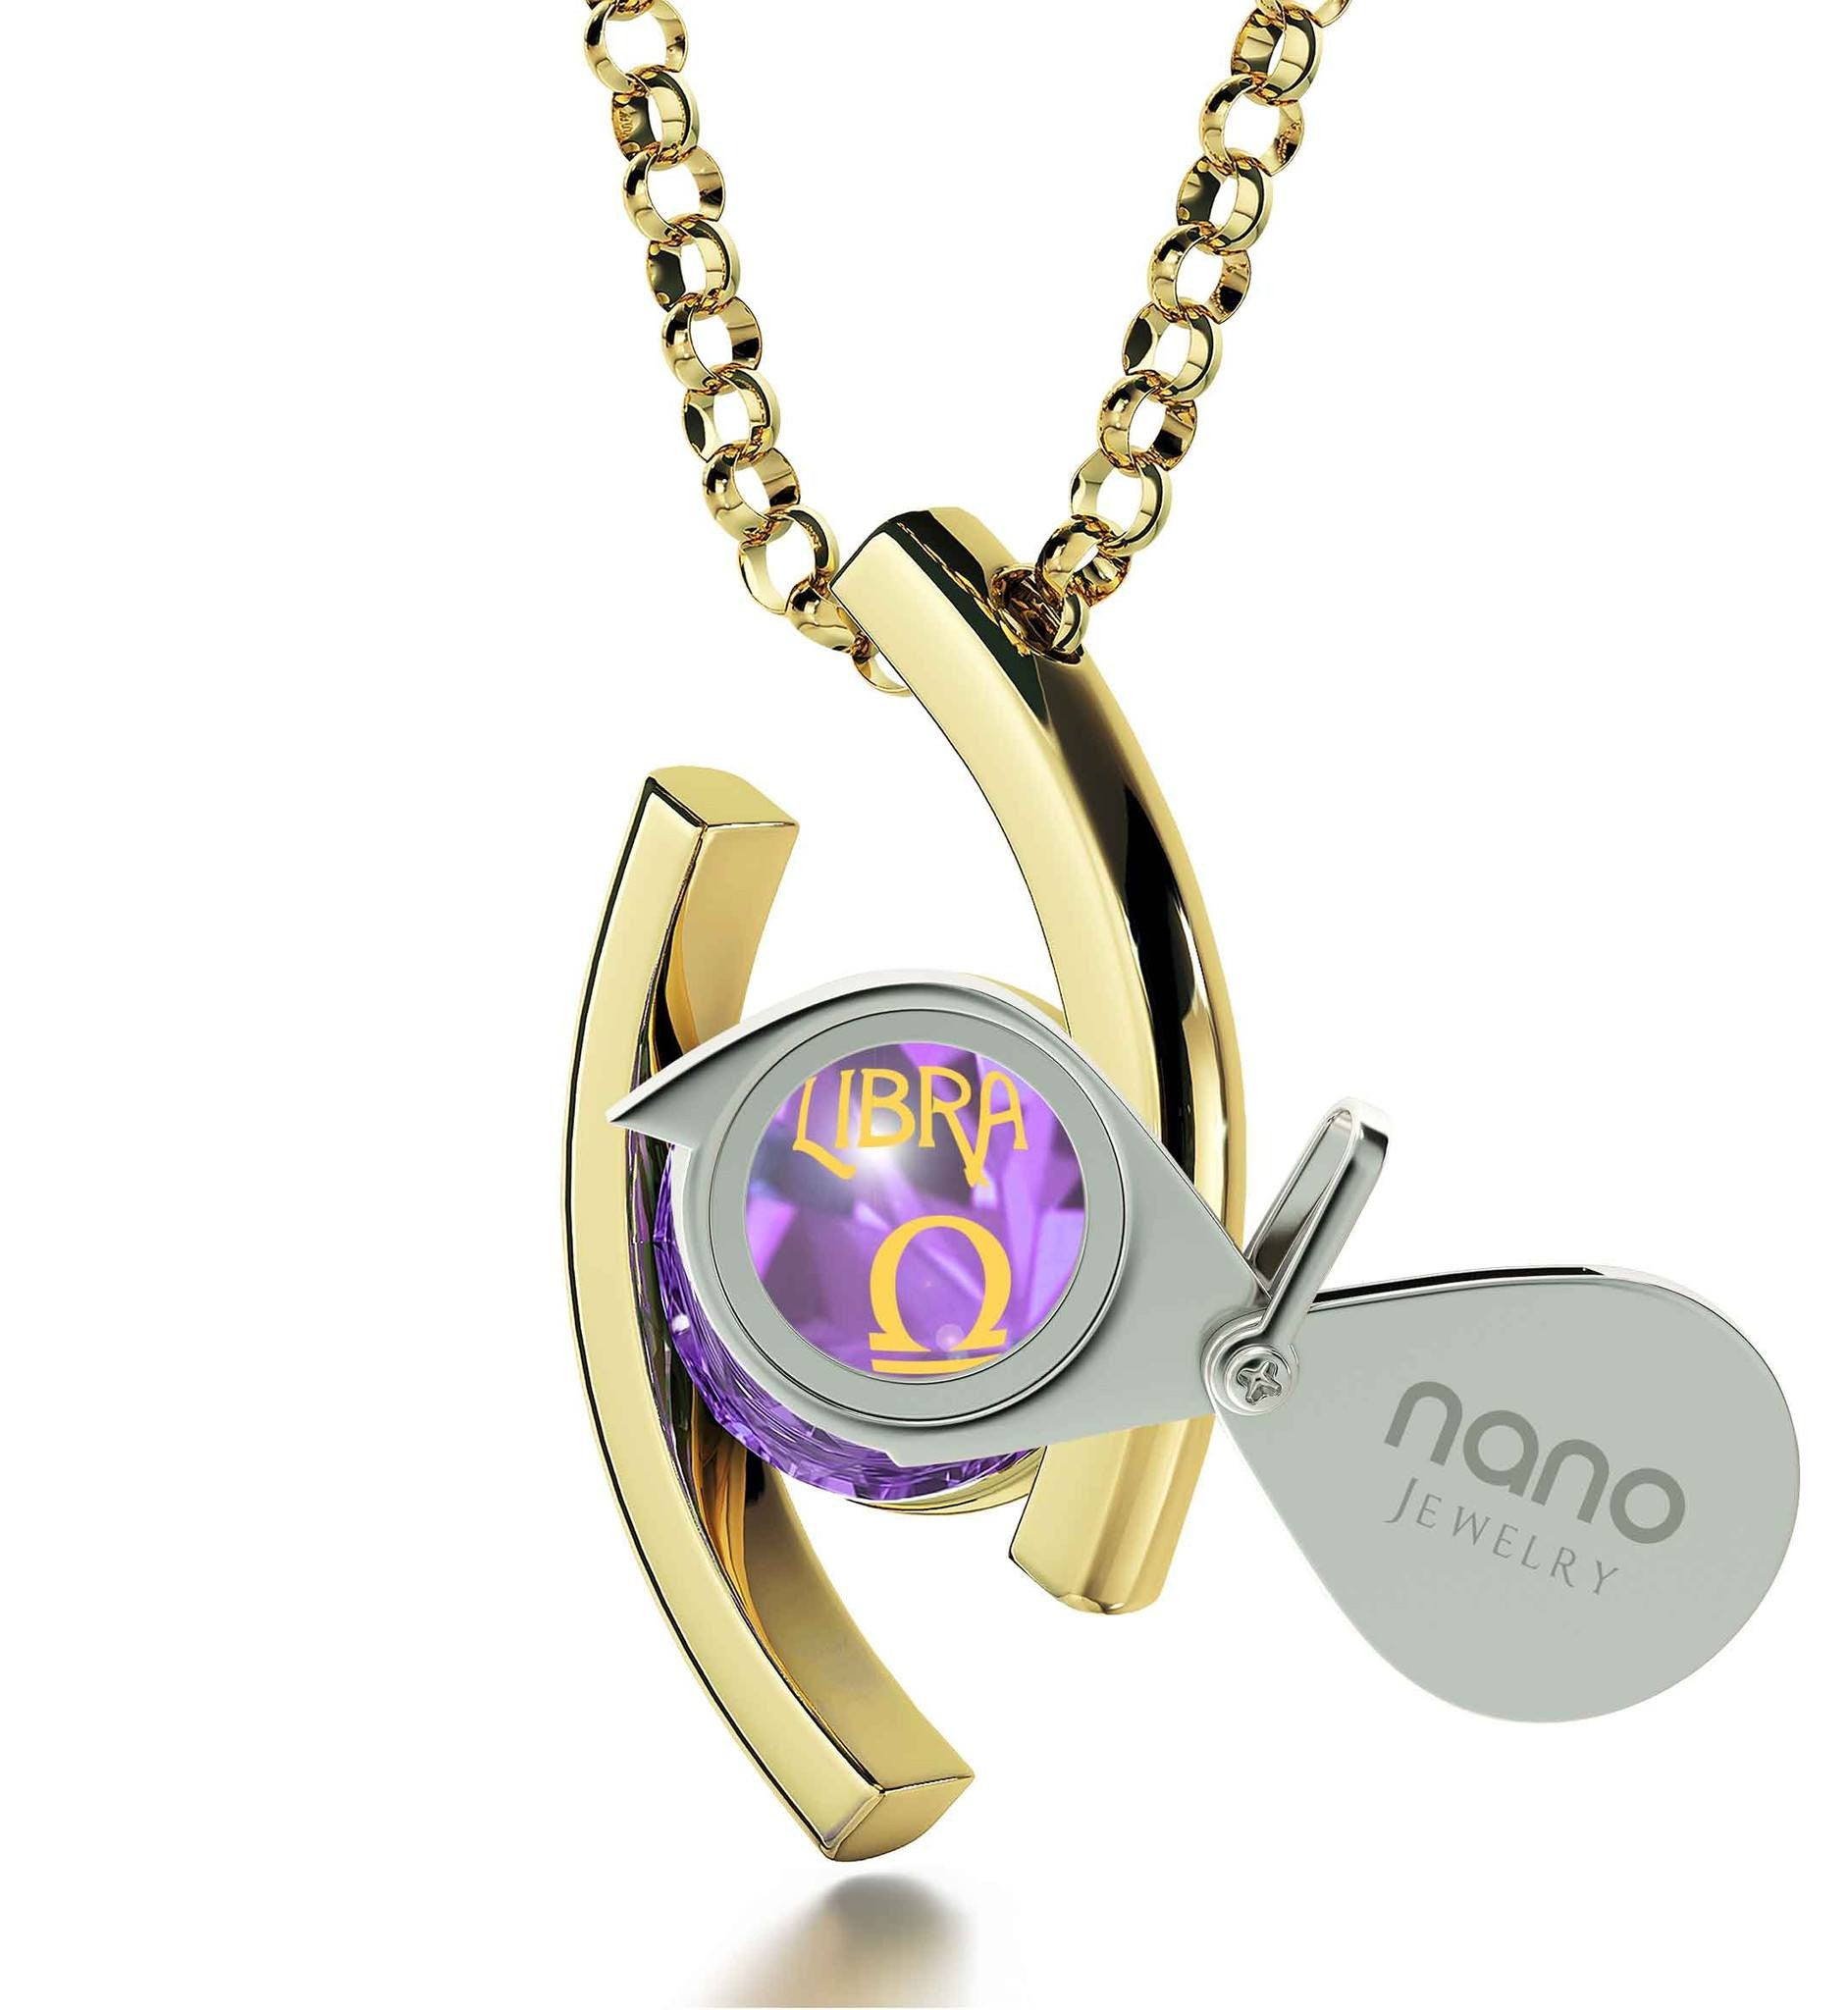 """Libra Jewelry With Zodiac Imprint, Special Gifts for Sisters, Christmas Presents for Your Best Friend, by Nano"""